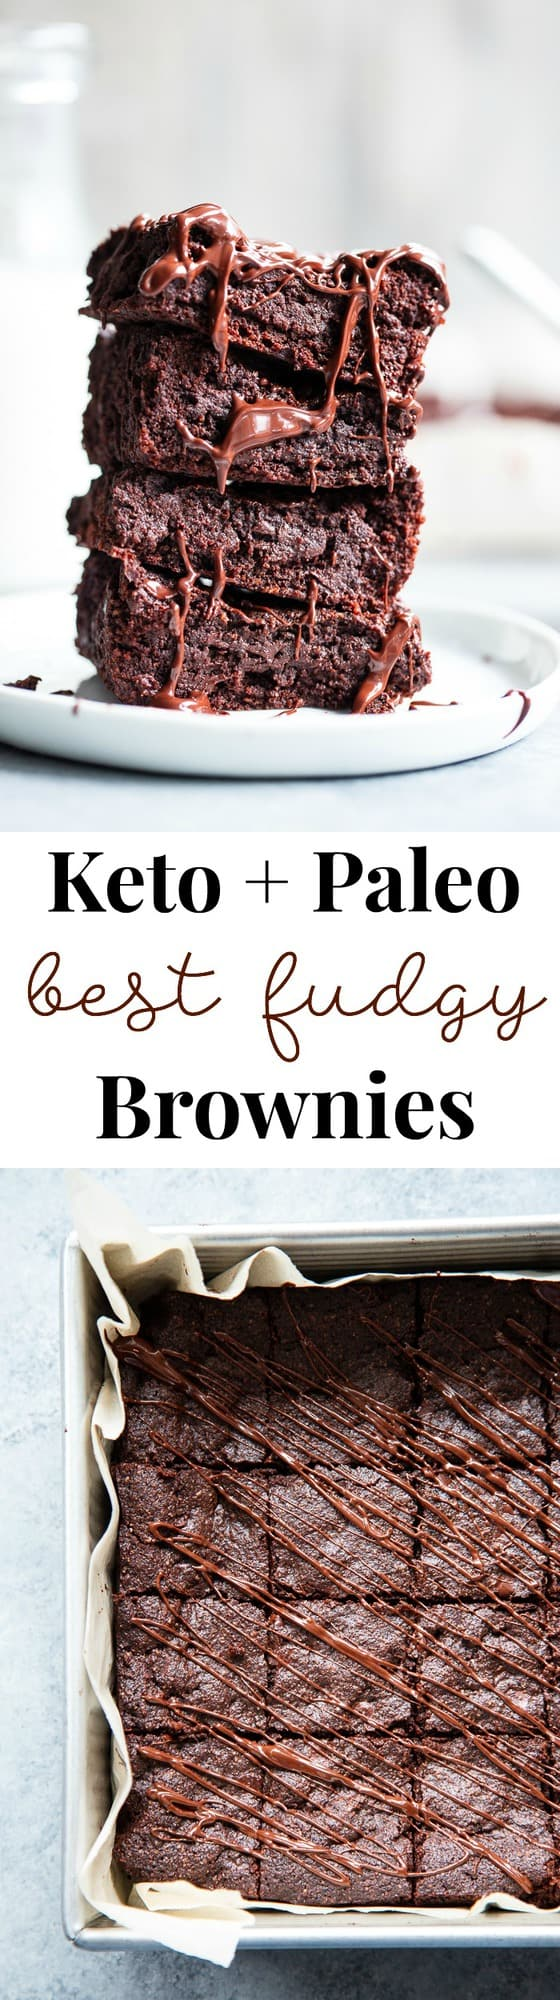 These keto brownies are super chocolatey, dense, fudgy and rich.  Quick and easy to throw together and perfect for when you're craving nothing but chocolate!  They're also dairy-free, paleo, gluten-free, and made in one bowl!